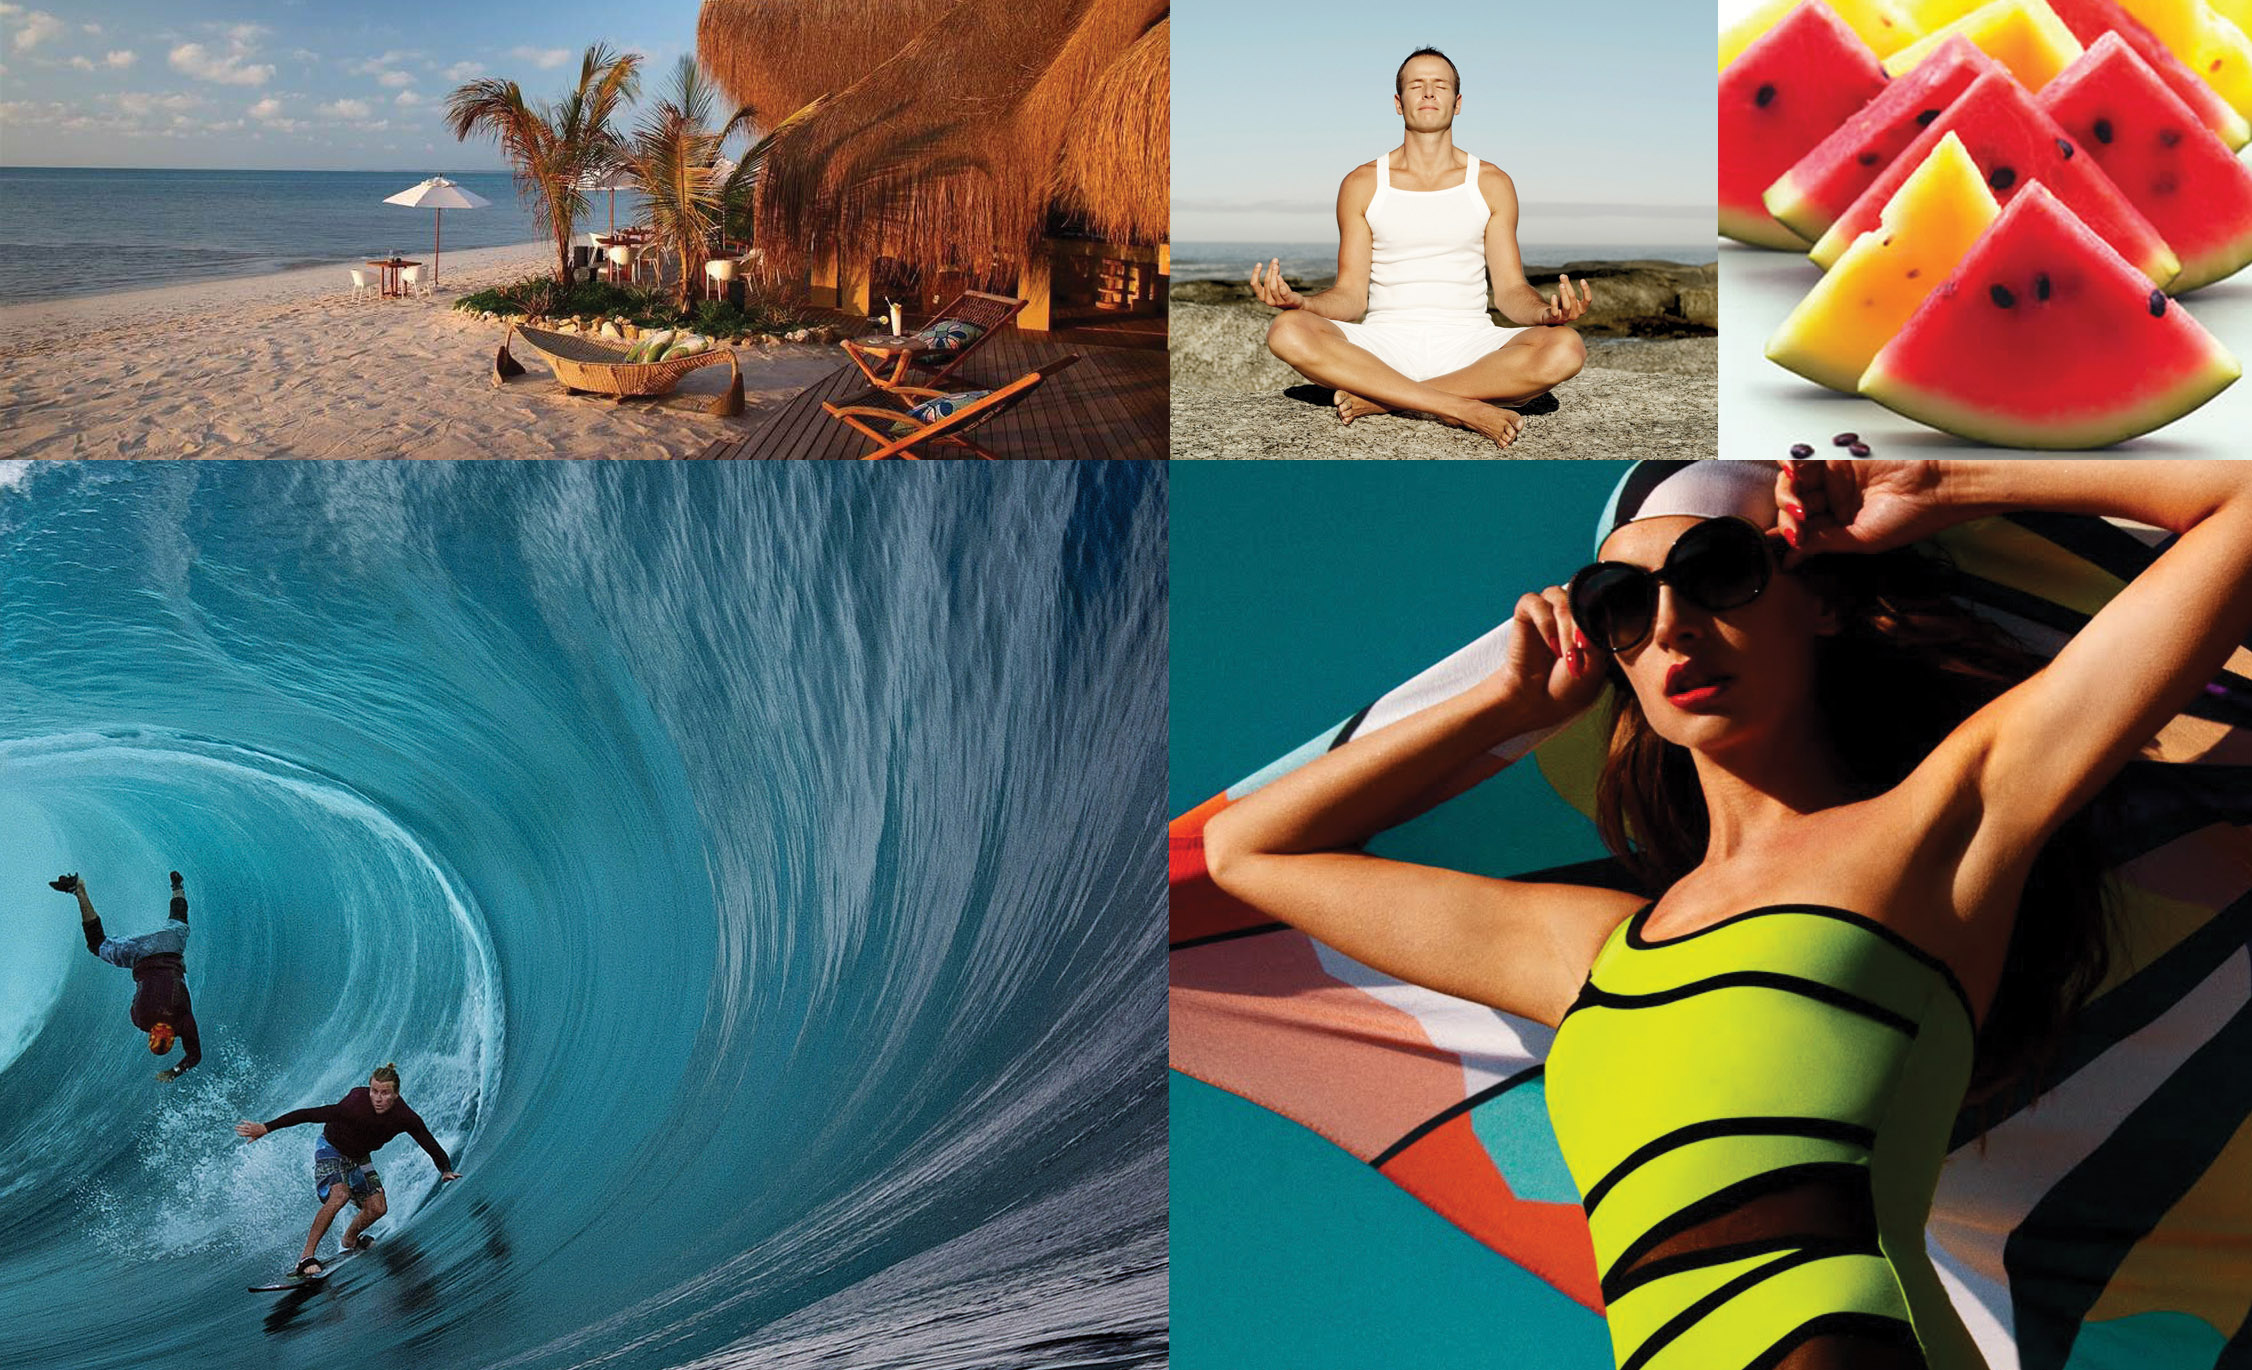 Five Must-Follow Instagrams This Summer